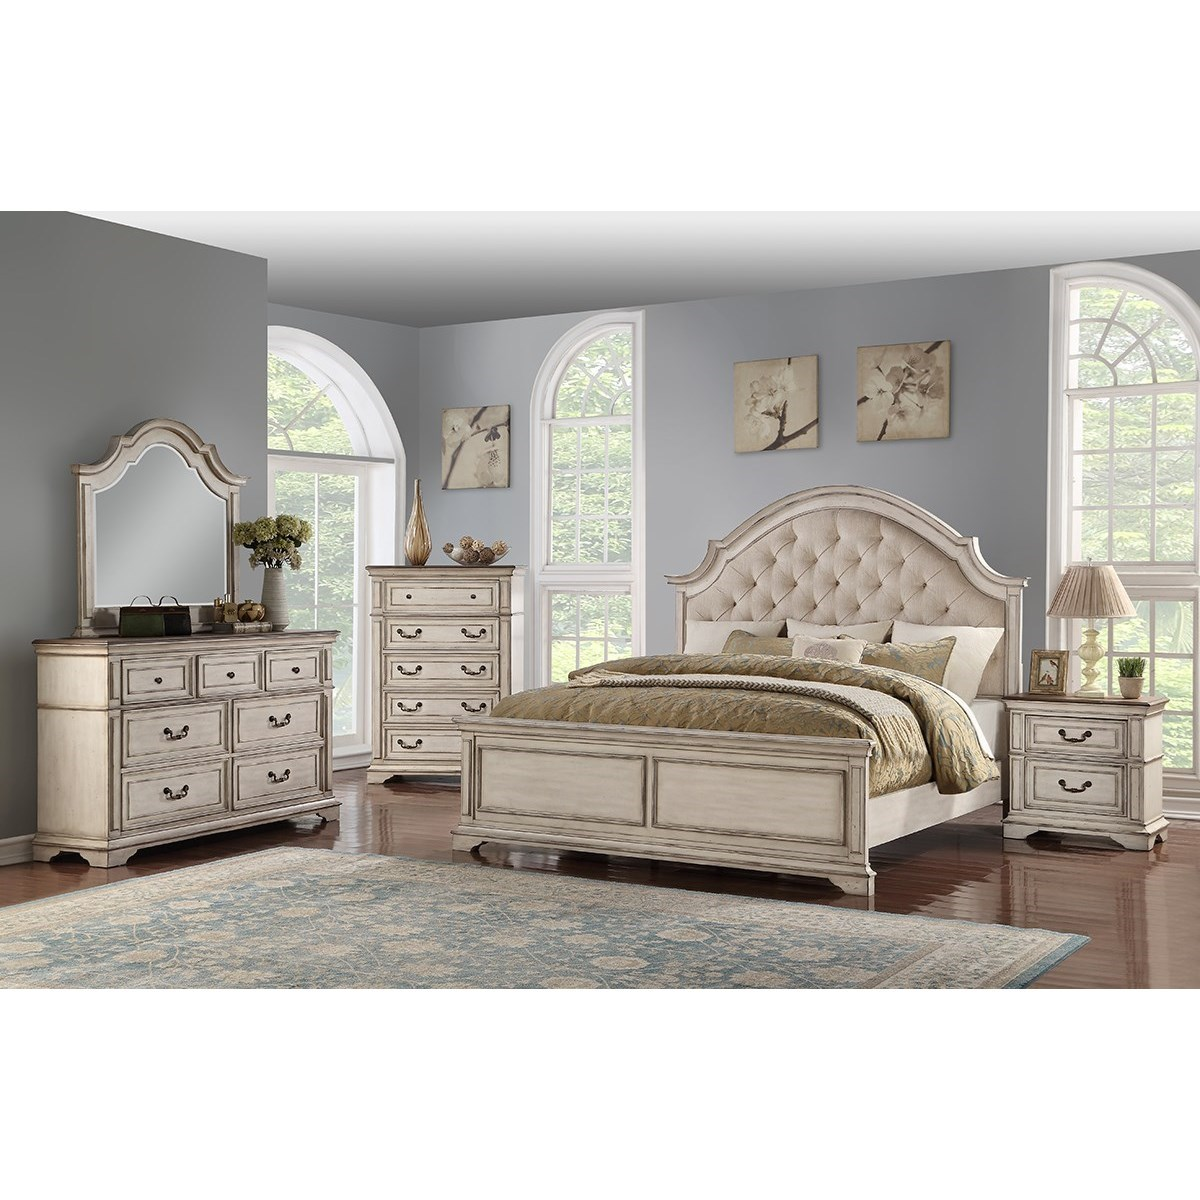 Anastasia California King Bedroom Group by New Classic at Pilgrim Furniture City